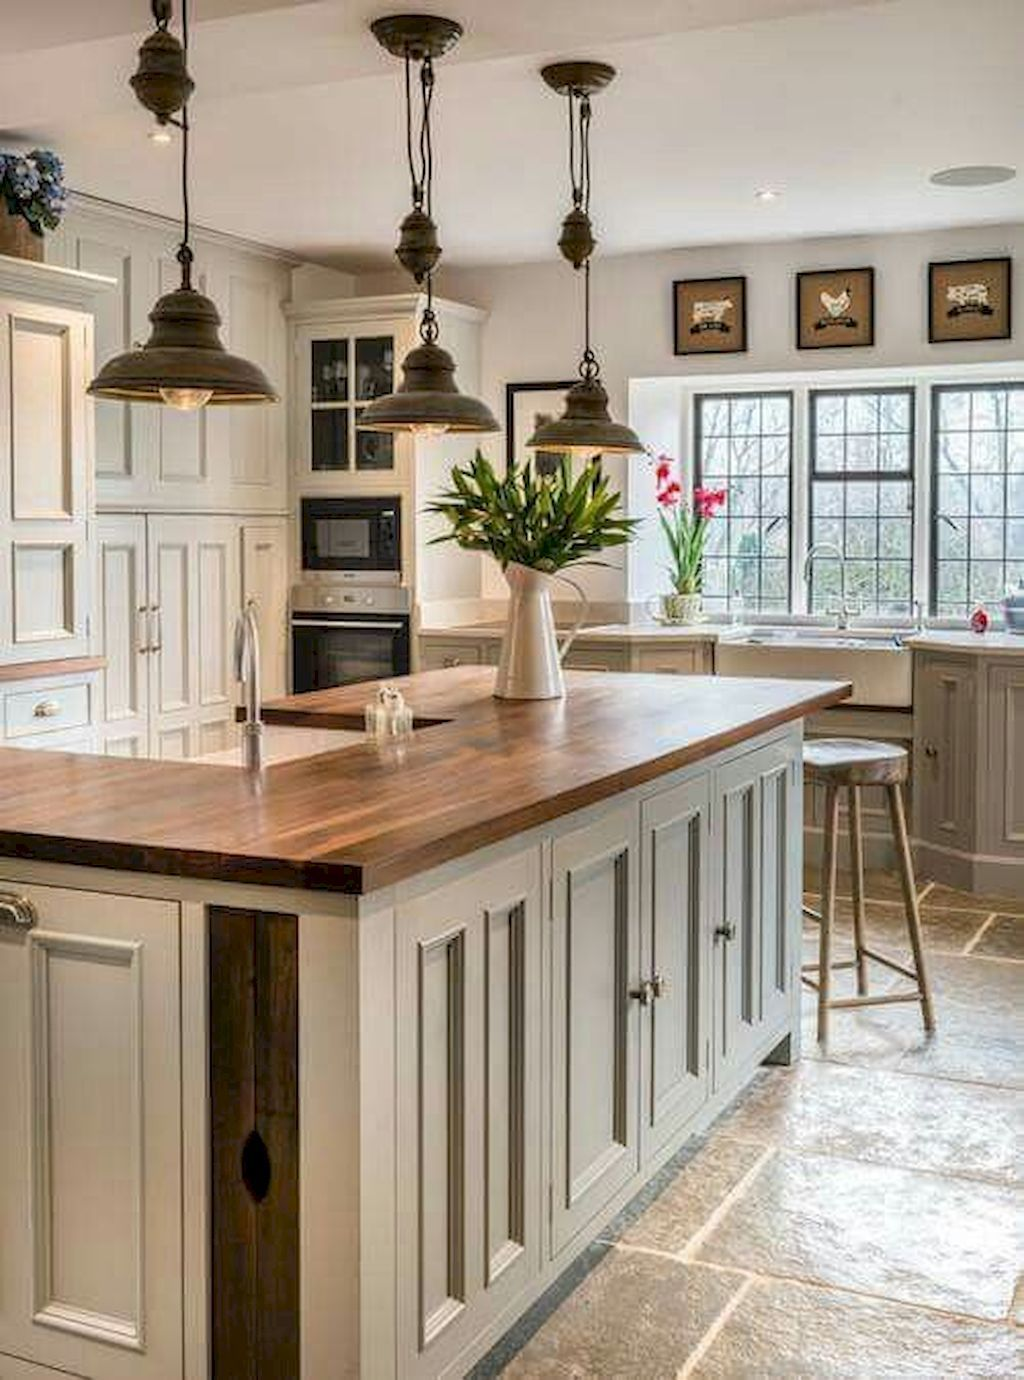 Farmhouse Kitchen Decor: 40 Rustic Modern Farmhouse Kitchen Design Ideas